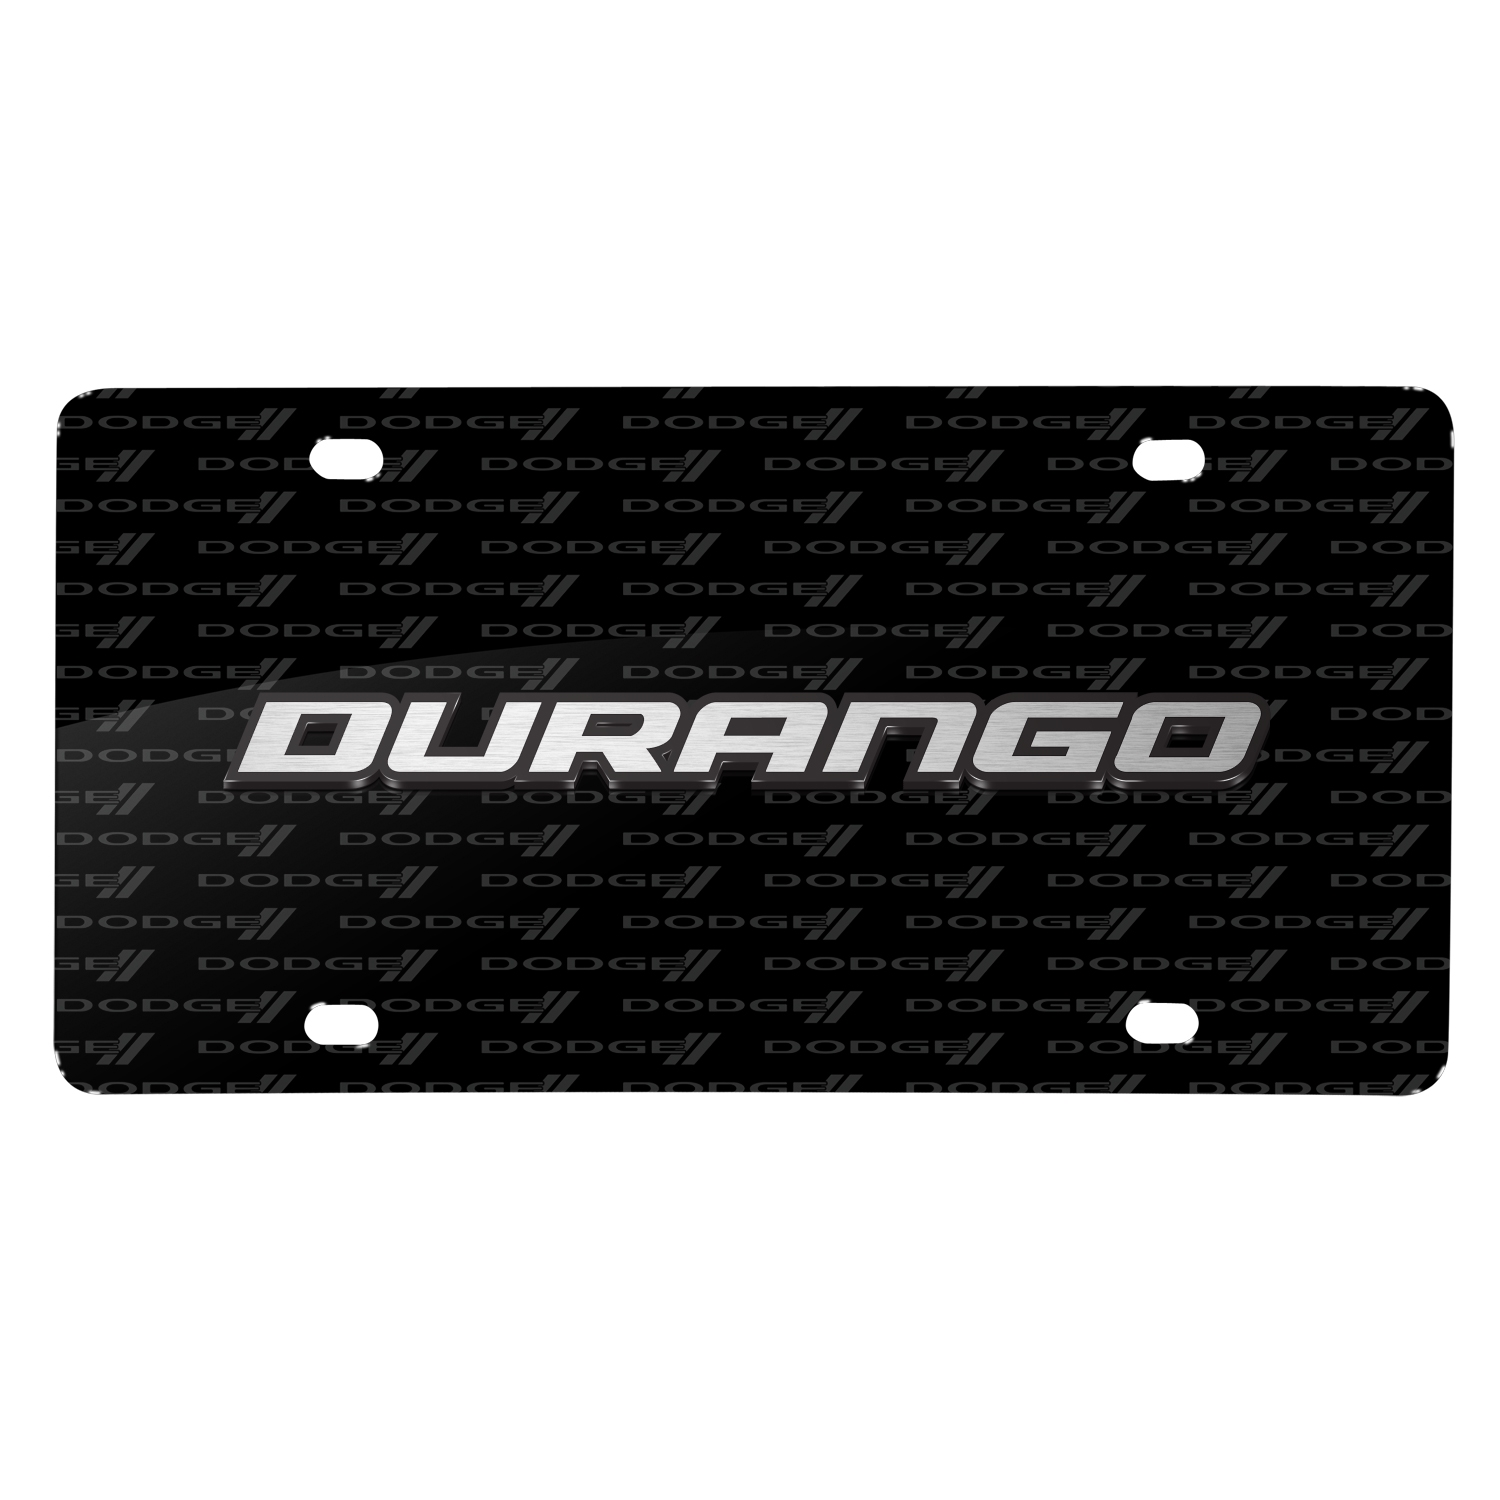 Dodge Durango 3D Logo on Logo Pattern Black Aluminum License Plate